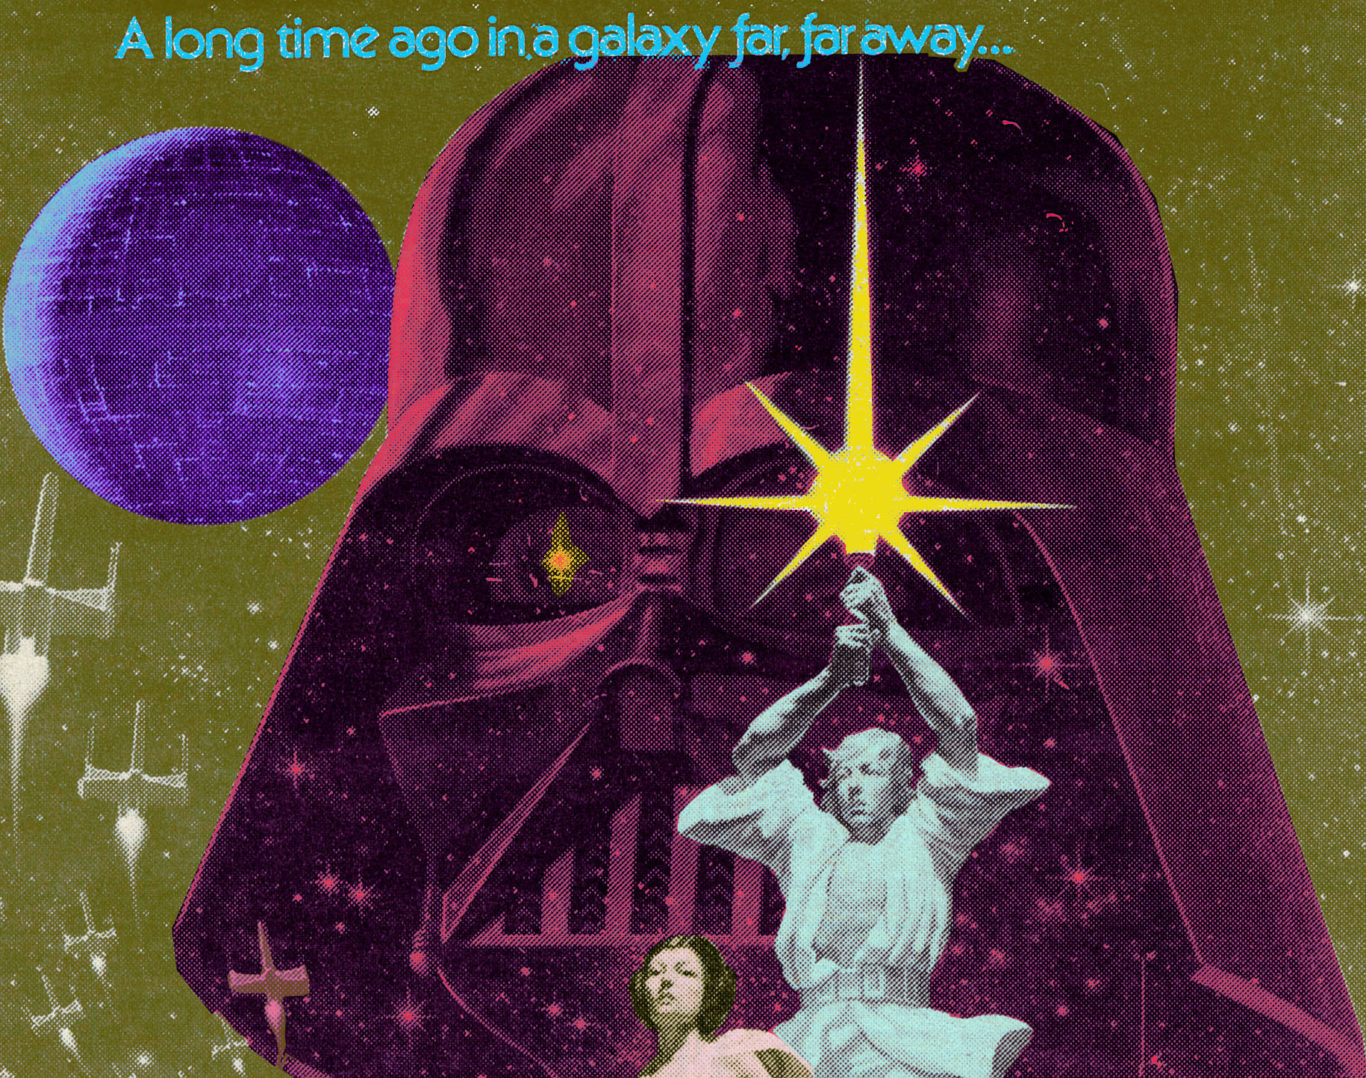 Galactic Graffiti: 'Star Wars' Reviewed | The Village Voice